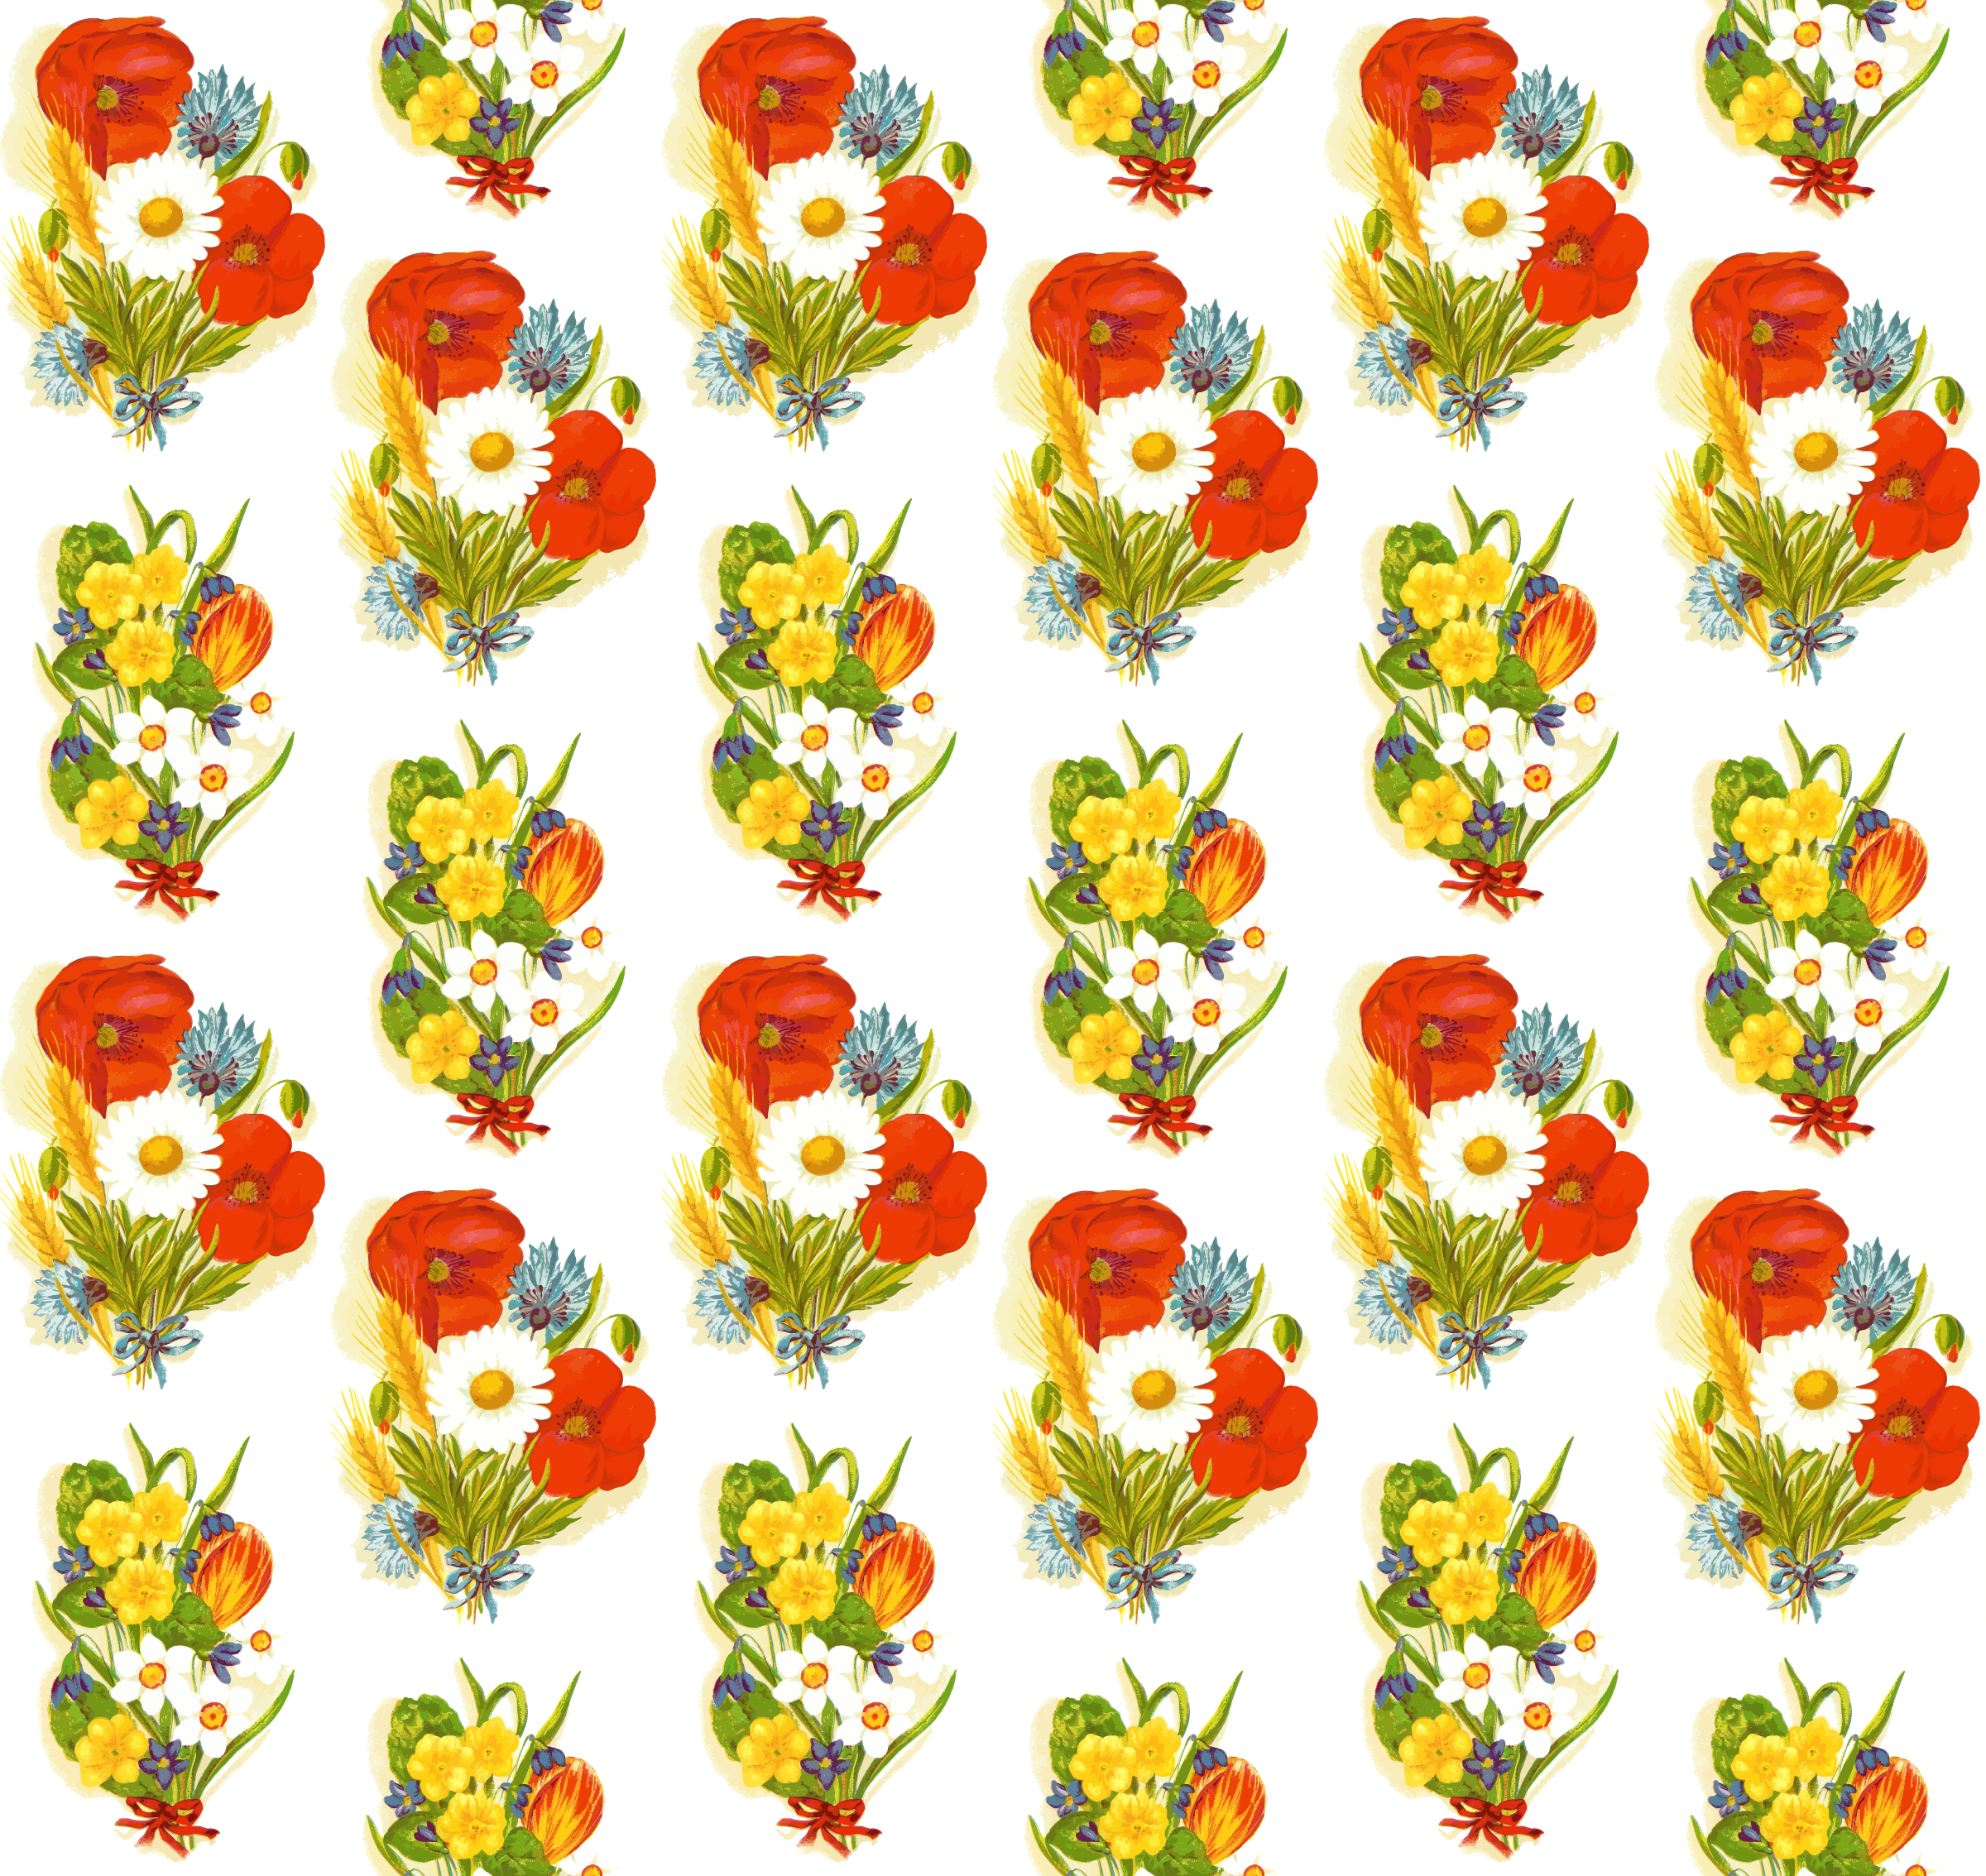 Flower pattern 4 by Firkin